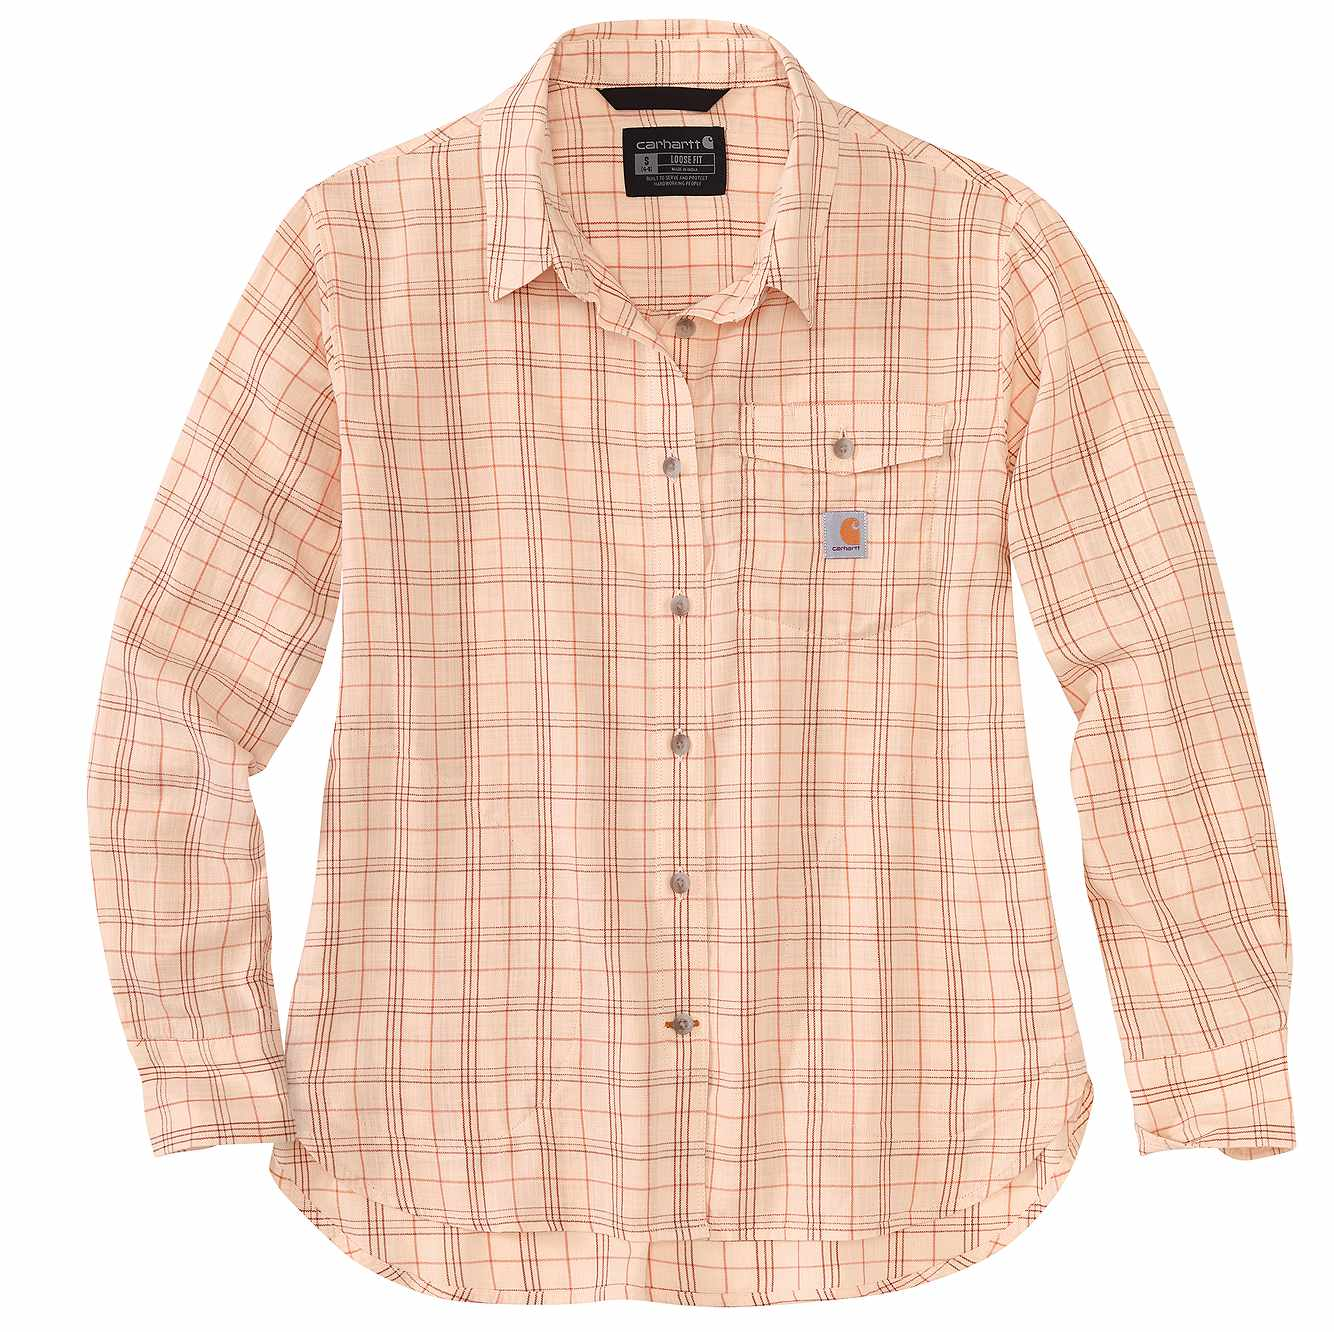 Picture of Loose Fit Lightweight Plaid Shirt in Cantaloupe